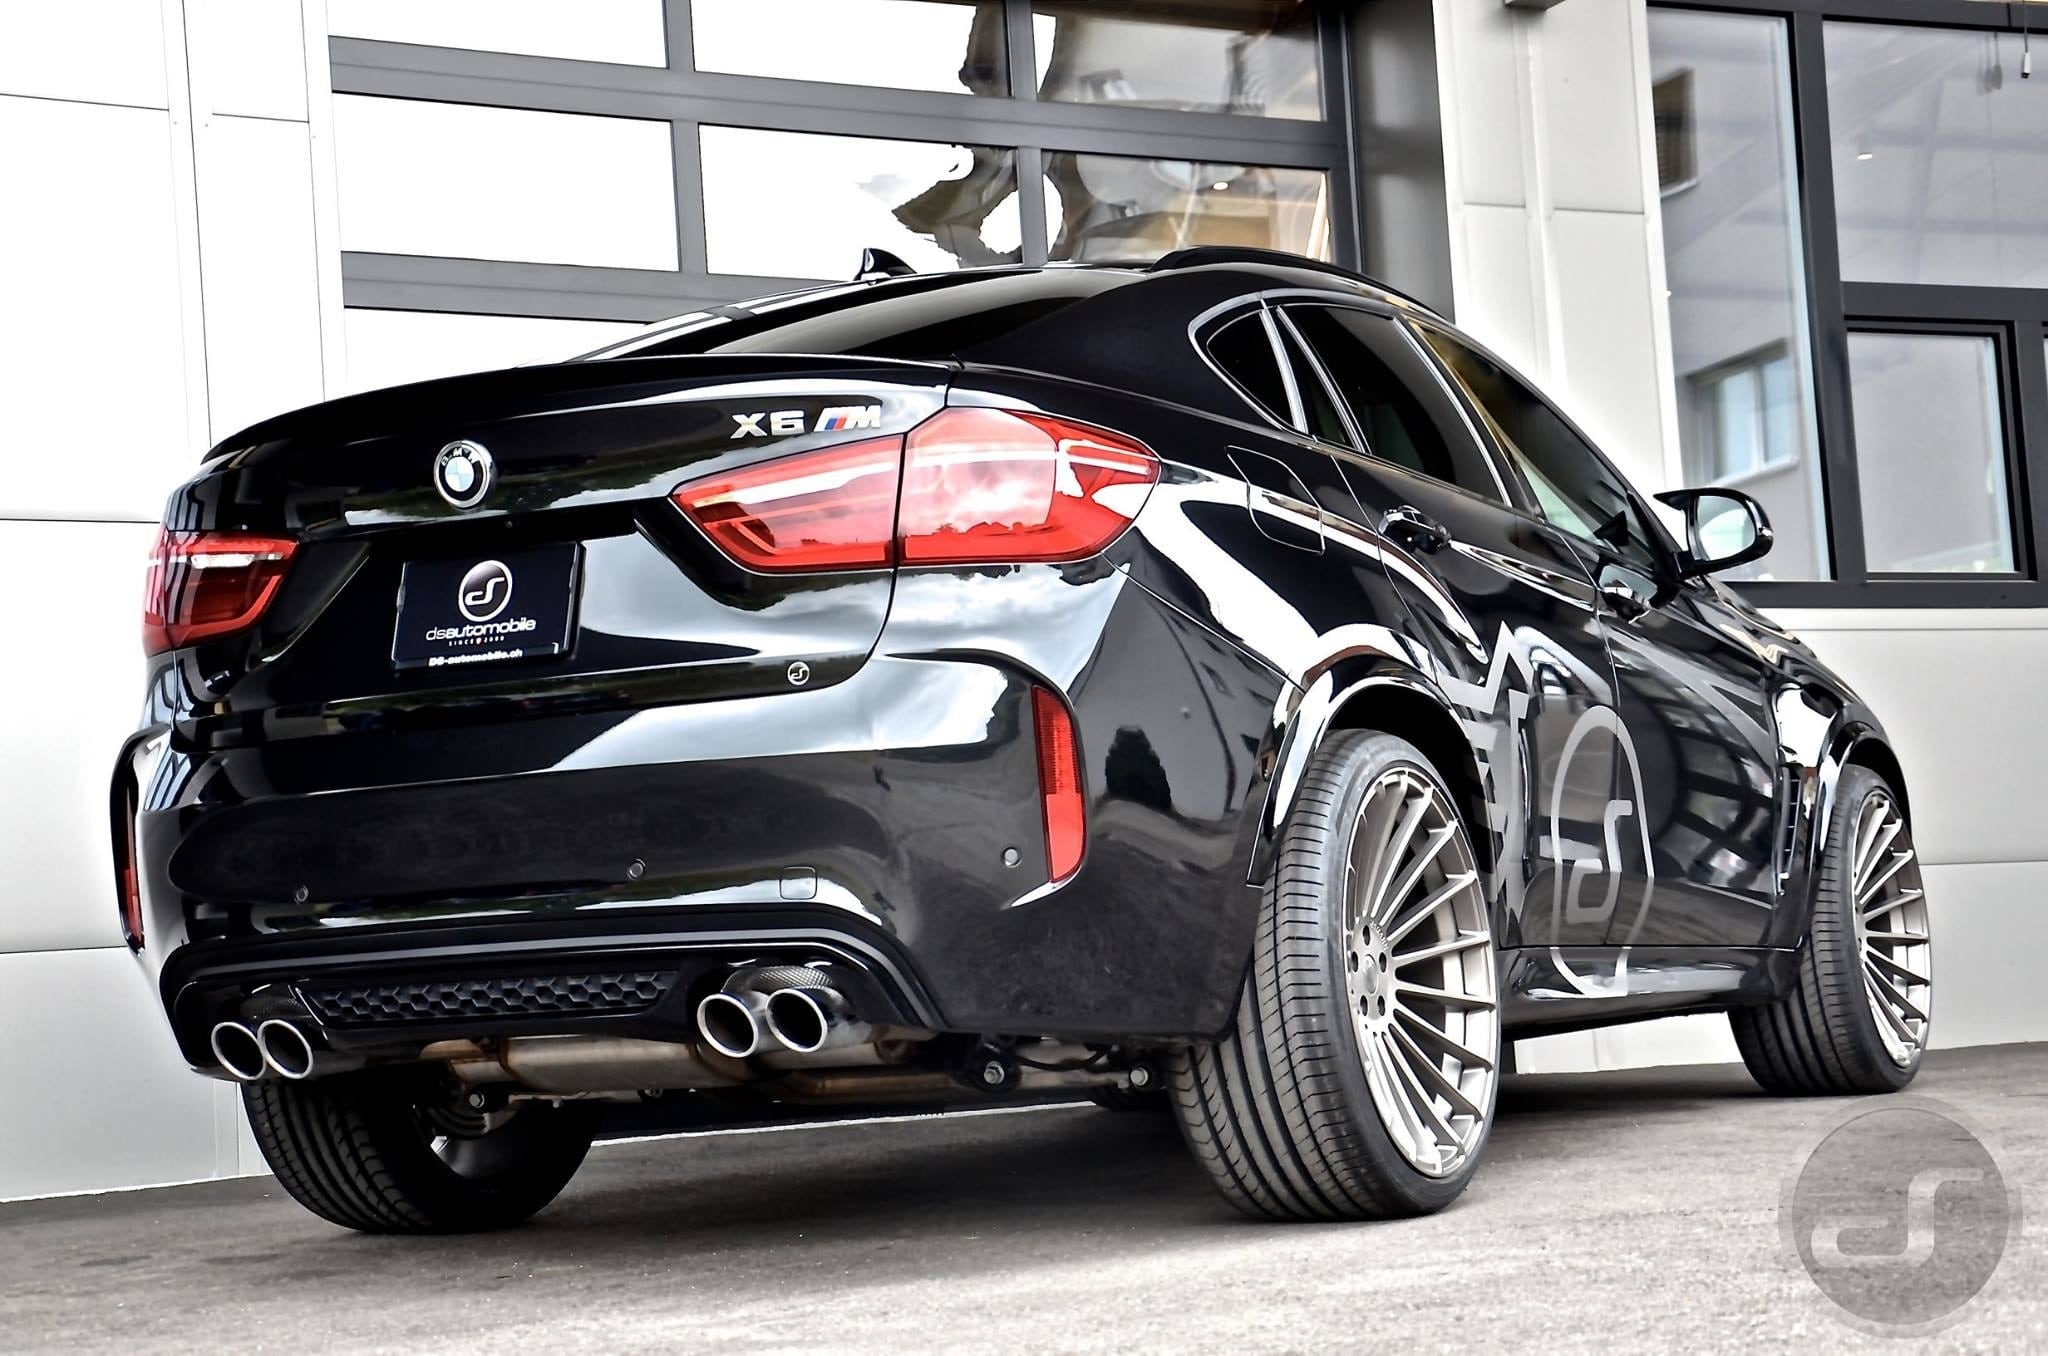 2020 bmw x6 m review specs and release date car 2018 2019 Specs